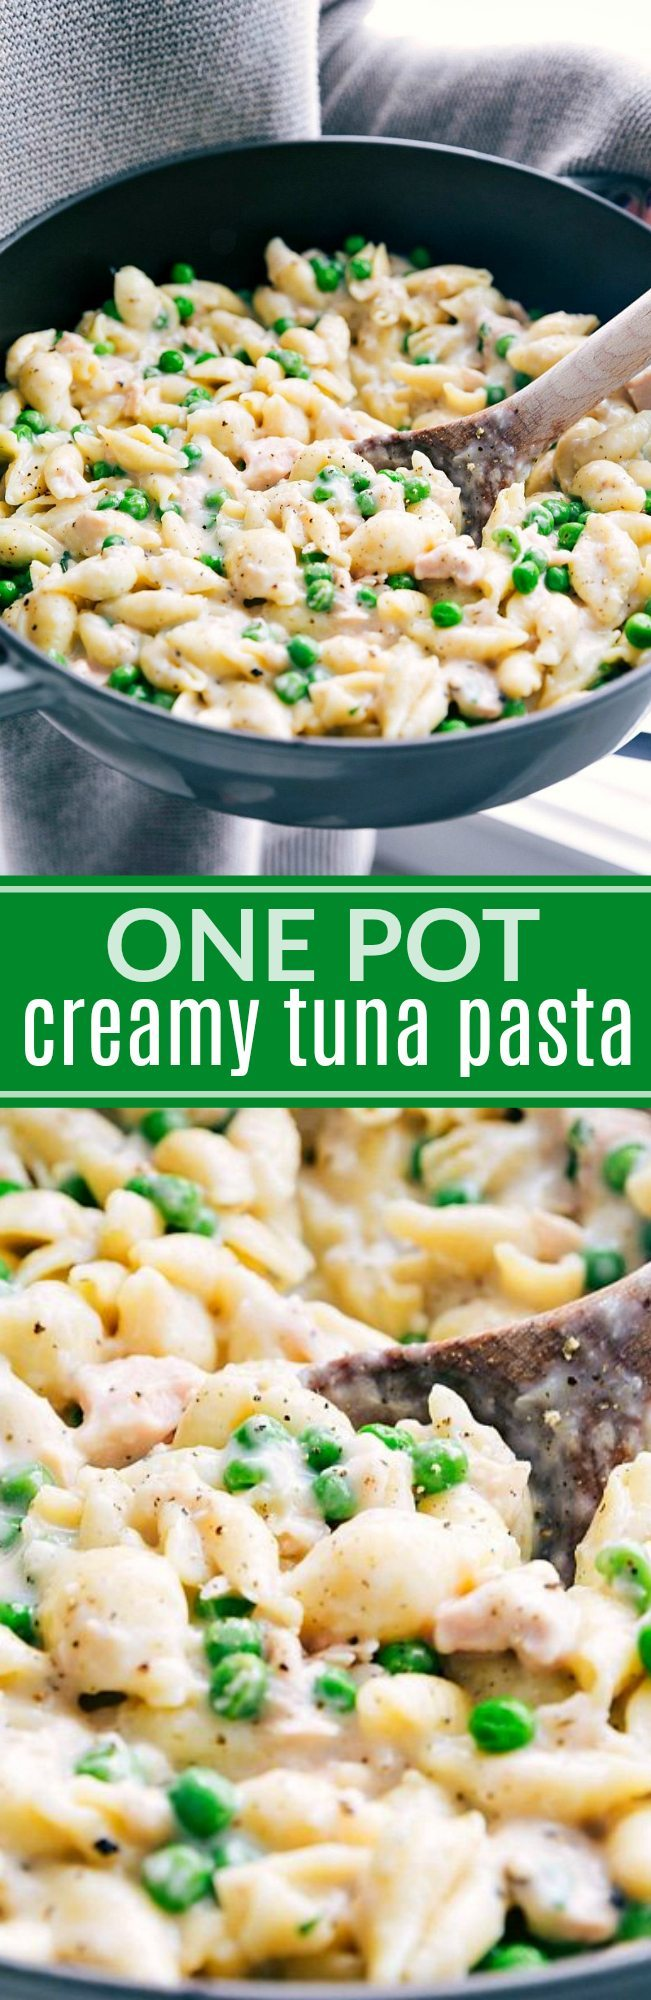 The best and easiest ONE POT creamy tuna pasta! A super easy and quick ONE DISH dinner! via chelseasmessyapron.com | #tuna #creamy #pasta #onepan #onepot #easy #quick #peas #comfort #food #recipe #recipes